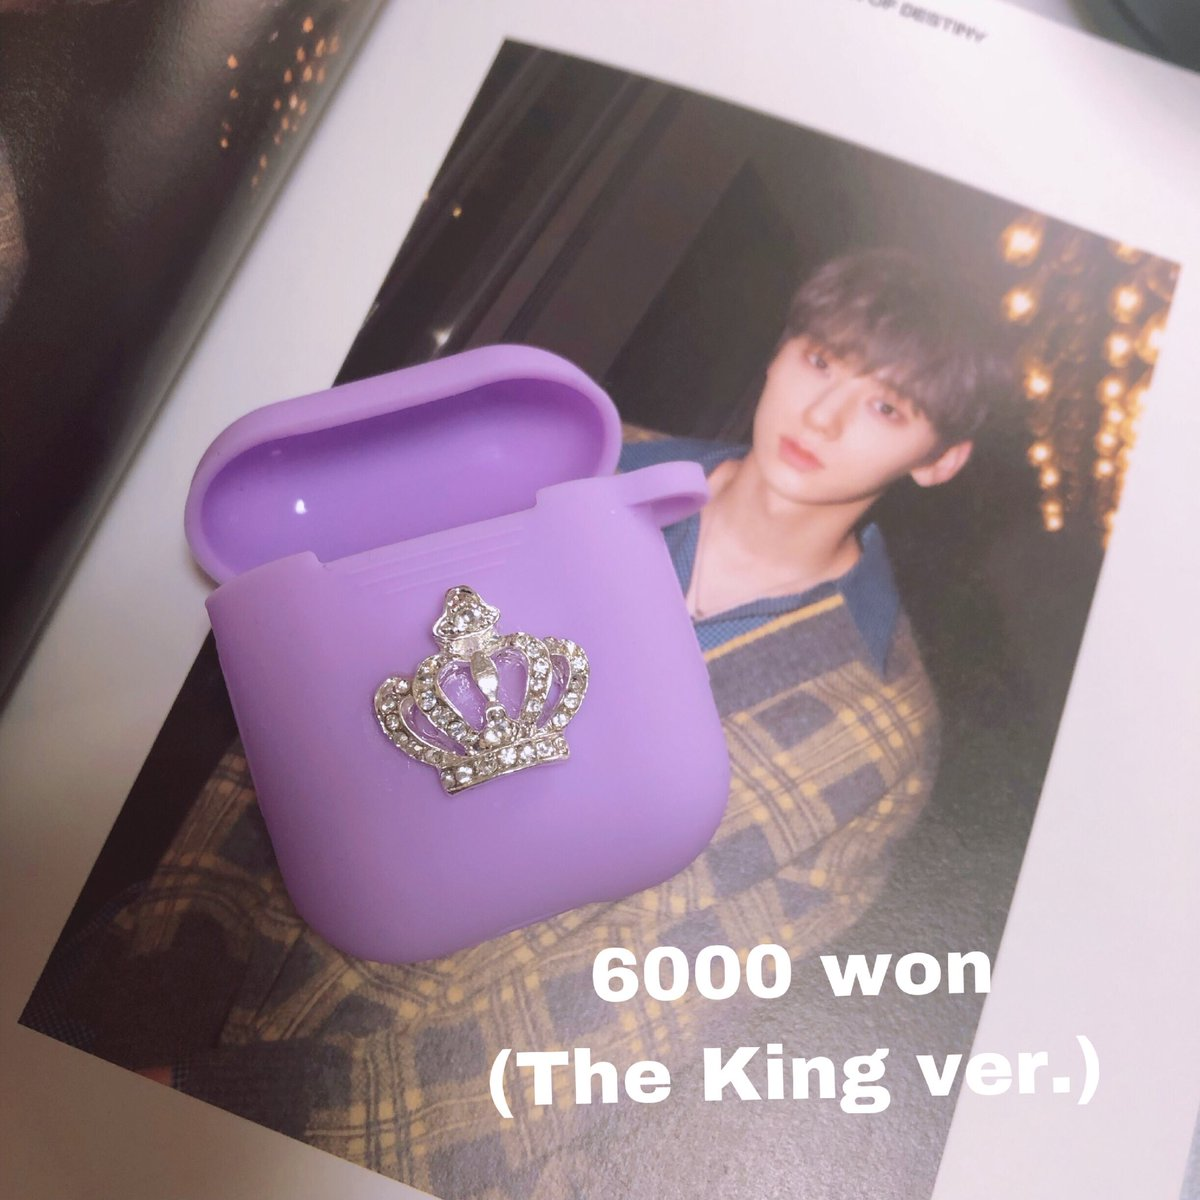 ☁️G.O.(Group Order)->Plz DM  ☁️Price: 6000 won  ☁️Shipping fee: Up to 20-3000won                         Over 20-4000won  ☁️If you want overseas delivery, Plz DM  #HWANGMINHYUN #Minhyun #Airpodcase